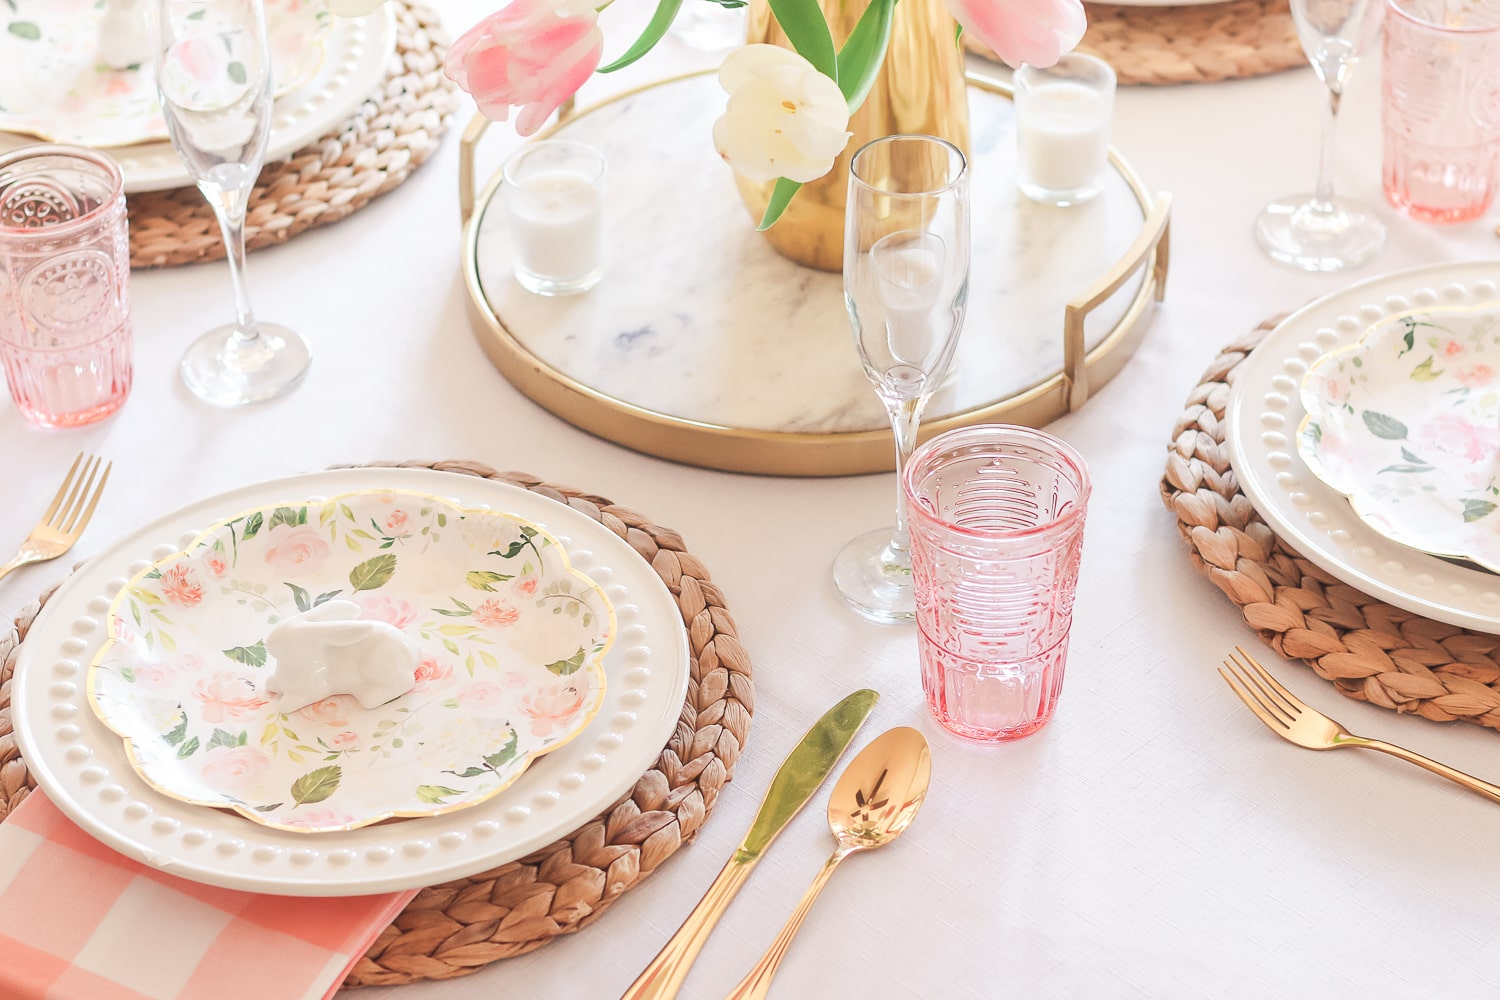 Southern lifestyle blogger Stephanie Ziajka shares some Easter table place setting ideas on Diary of a Debutante